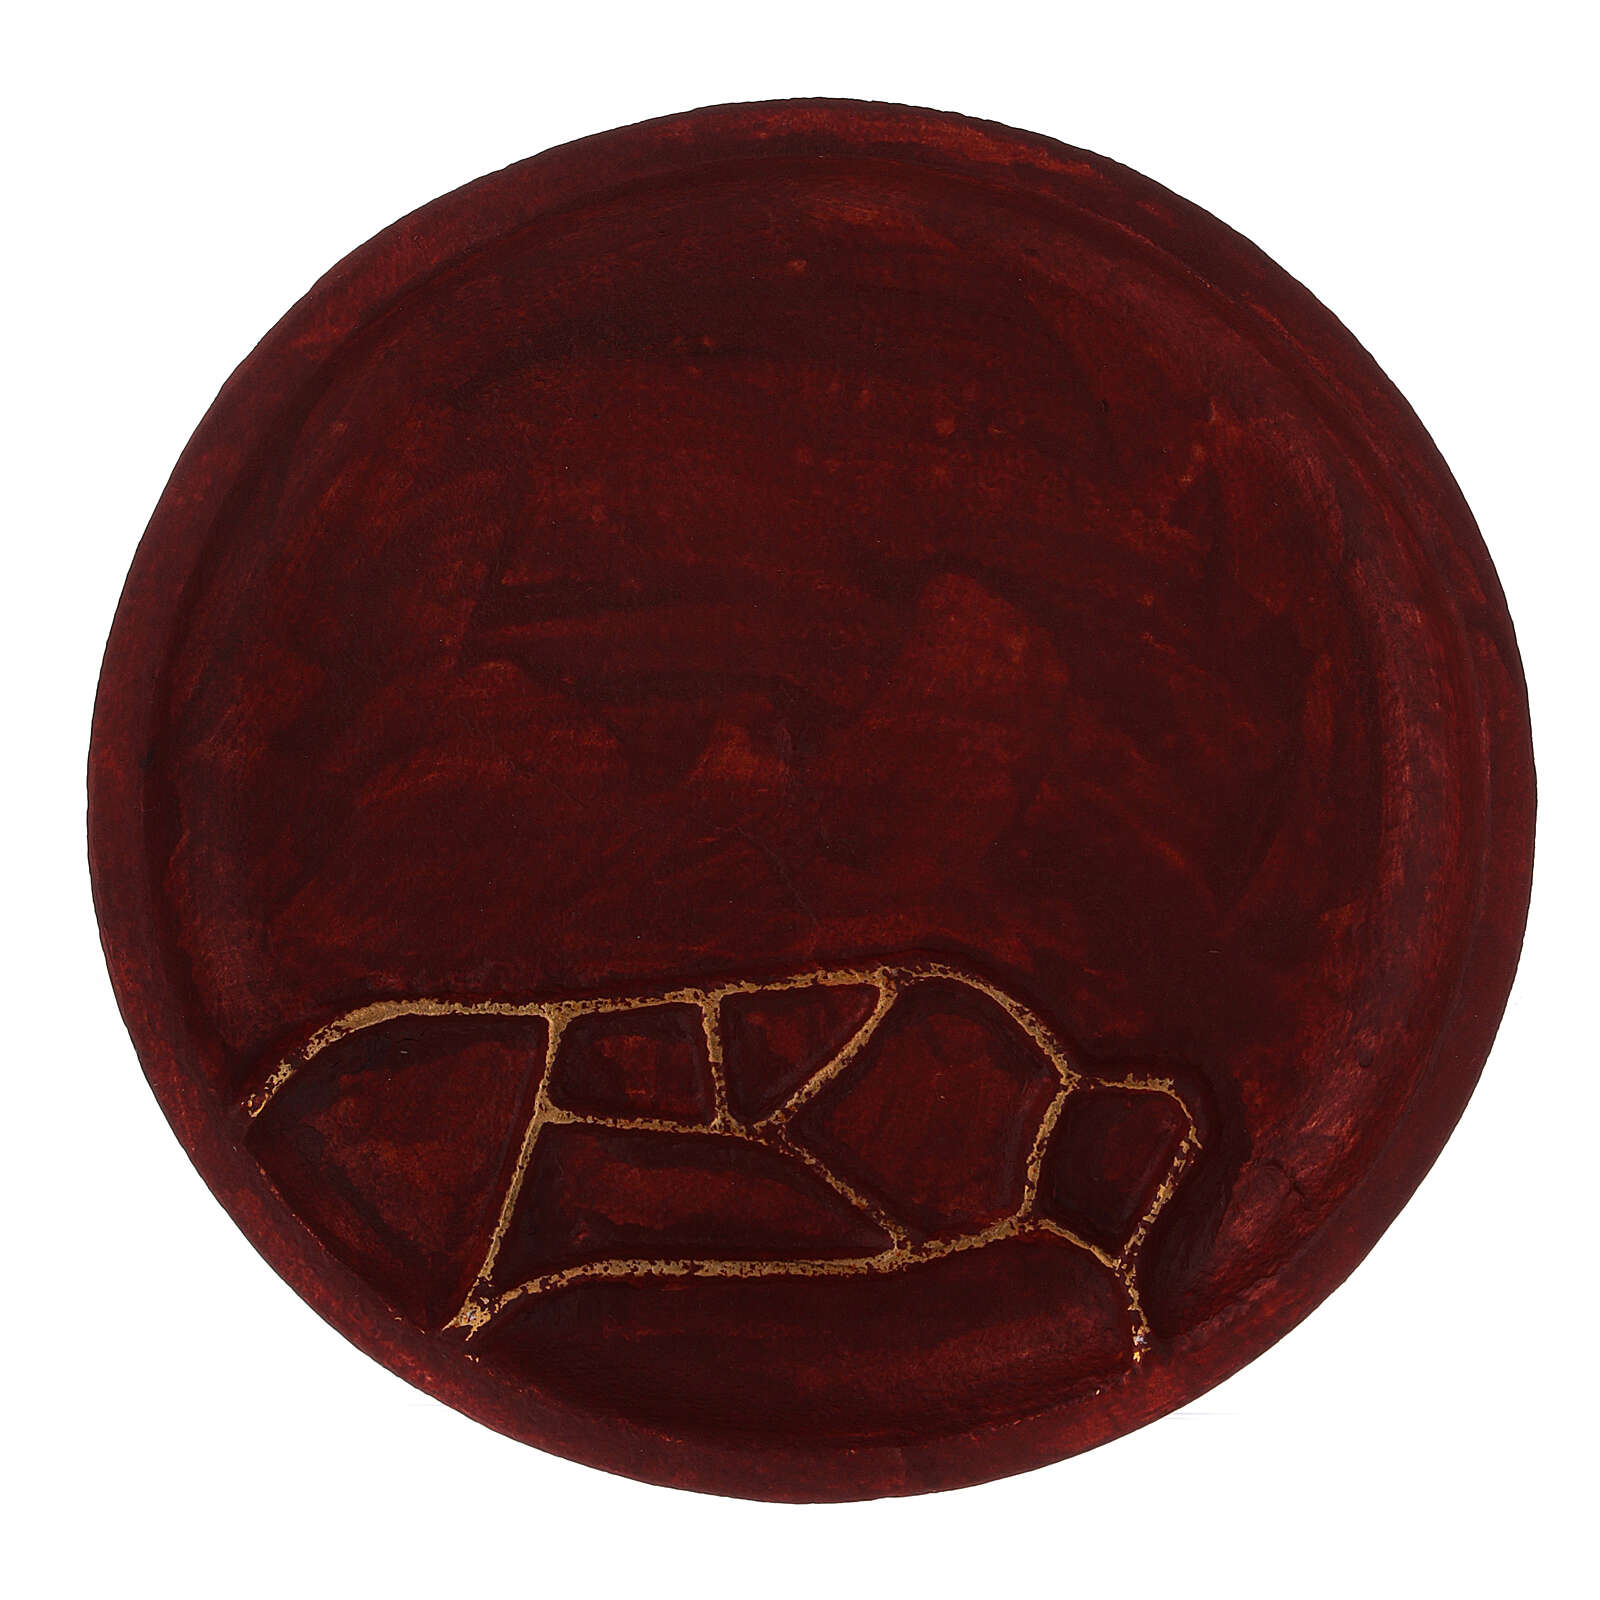 Red aluminium plate for candles abstract decoration d. 5 1/2 in 3